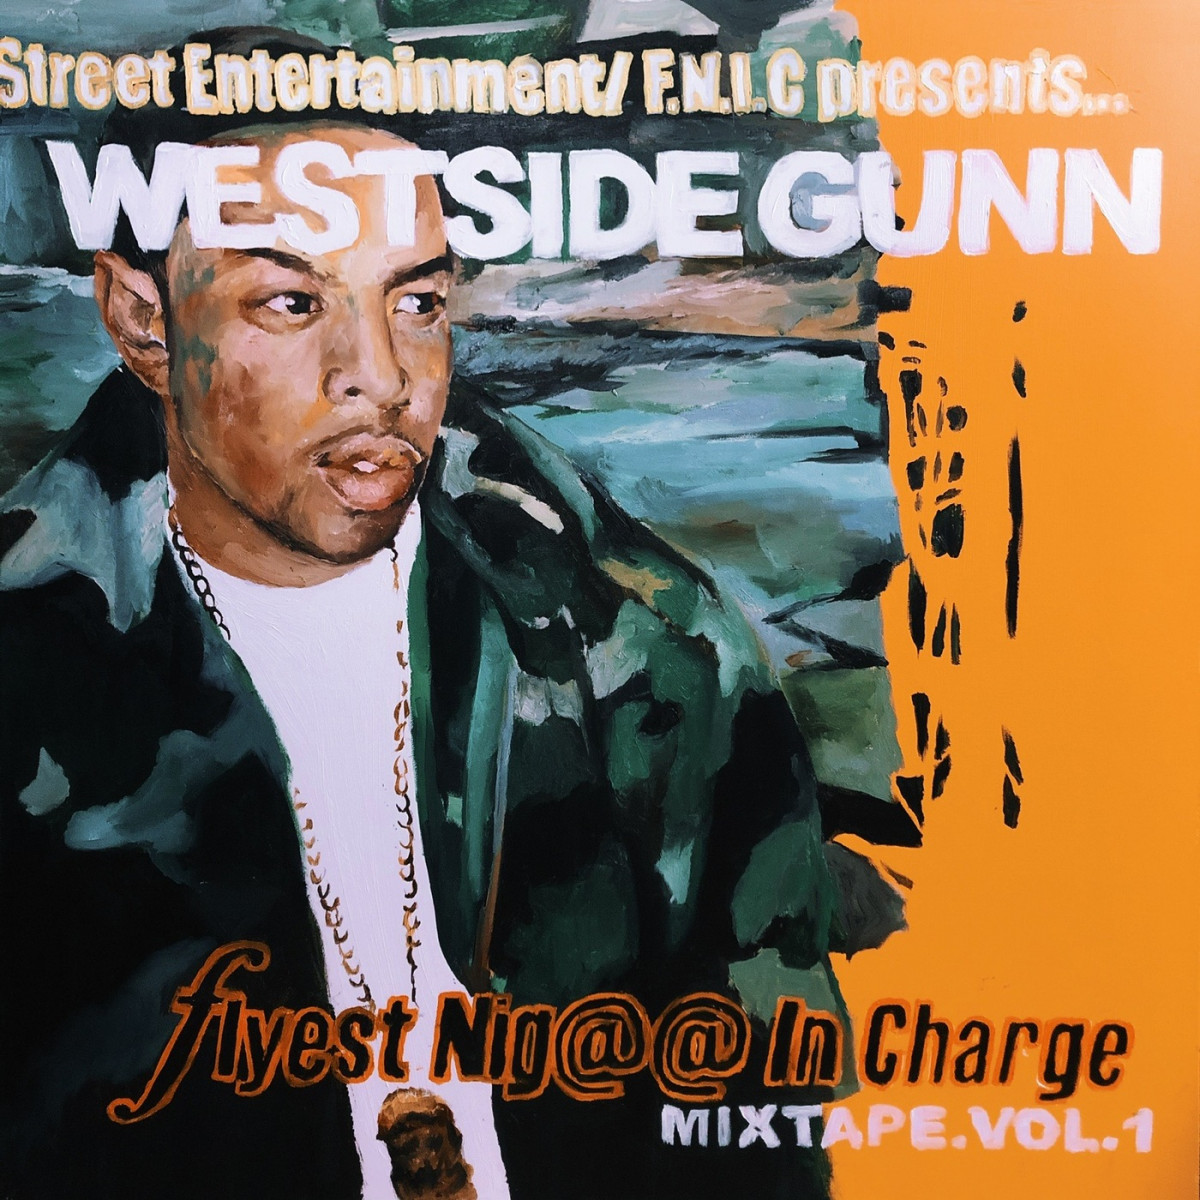 Westside Gunn — «Flyest Nigga In Charge Vol. 1» (2005)